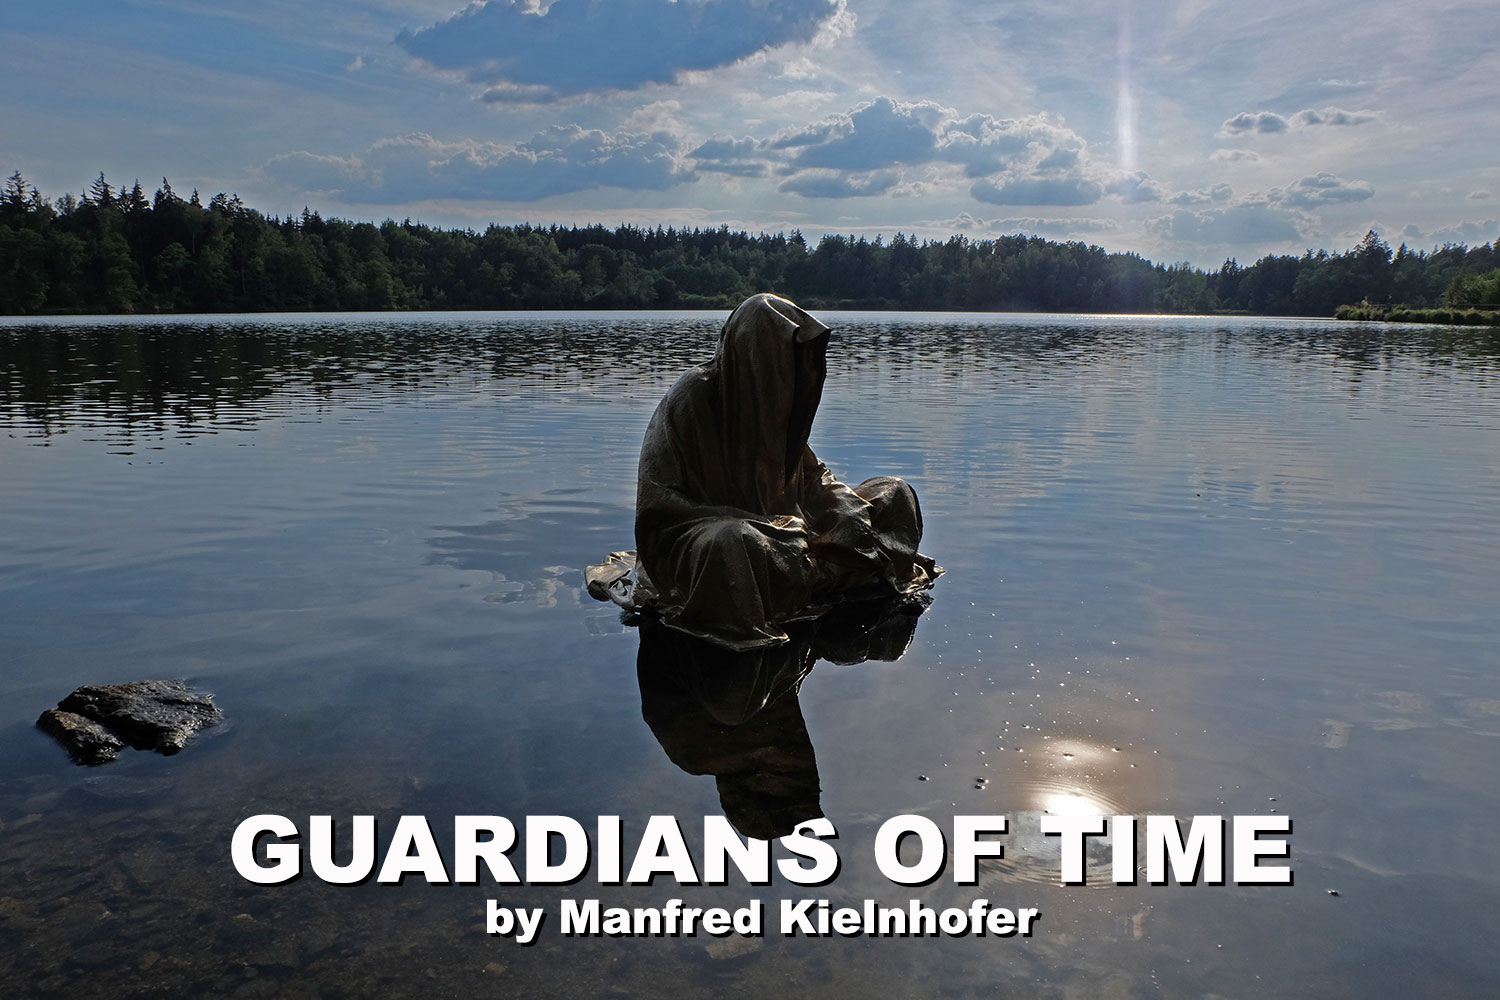 lower-austria-fish-pond-lake-guardians-of-time-by-manfred-kili-kielnhofer-contemporary-art-modern-sculpture-fine-photography-arts-ars-statue-water-reflection-7189y